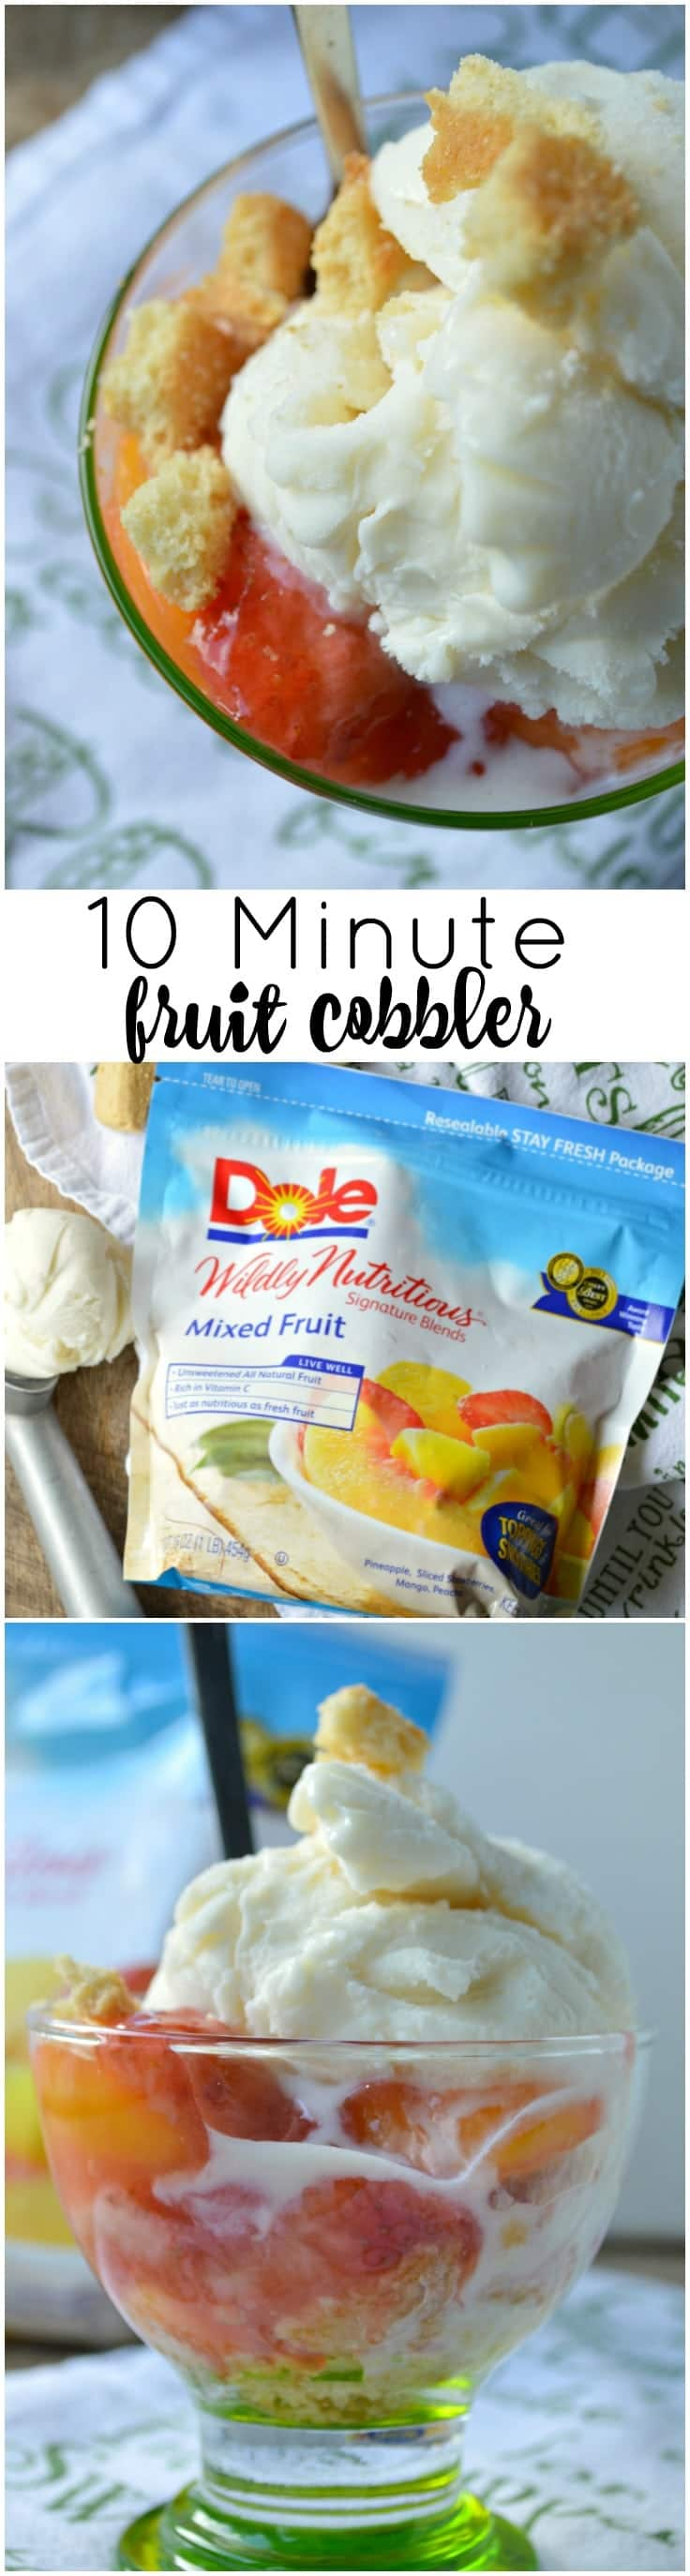 A quick, no-bake cobbler that is perfect for last minute get-togethers or extra guests! This 10 Minute Fruit Cobbler is a hassle free, simple solution to your sweet tooth!